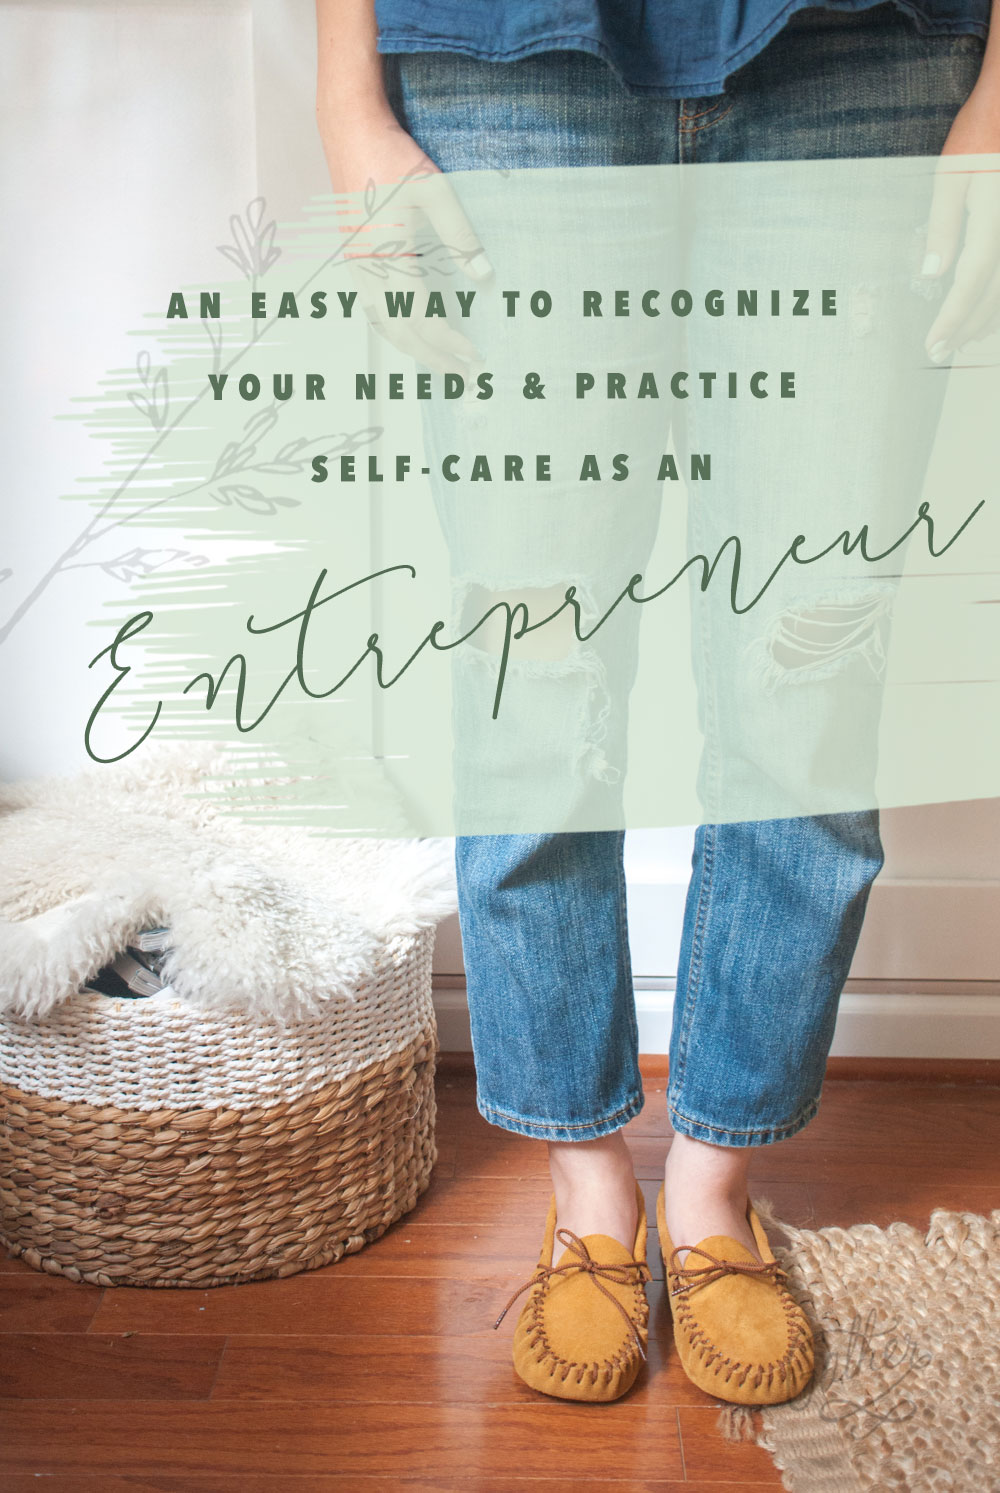 Recognizing & Practicing Self-Care as an Entrepreneur